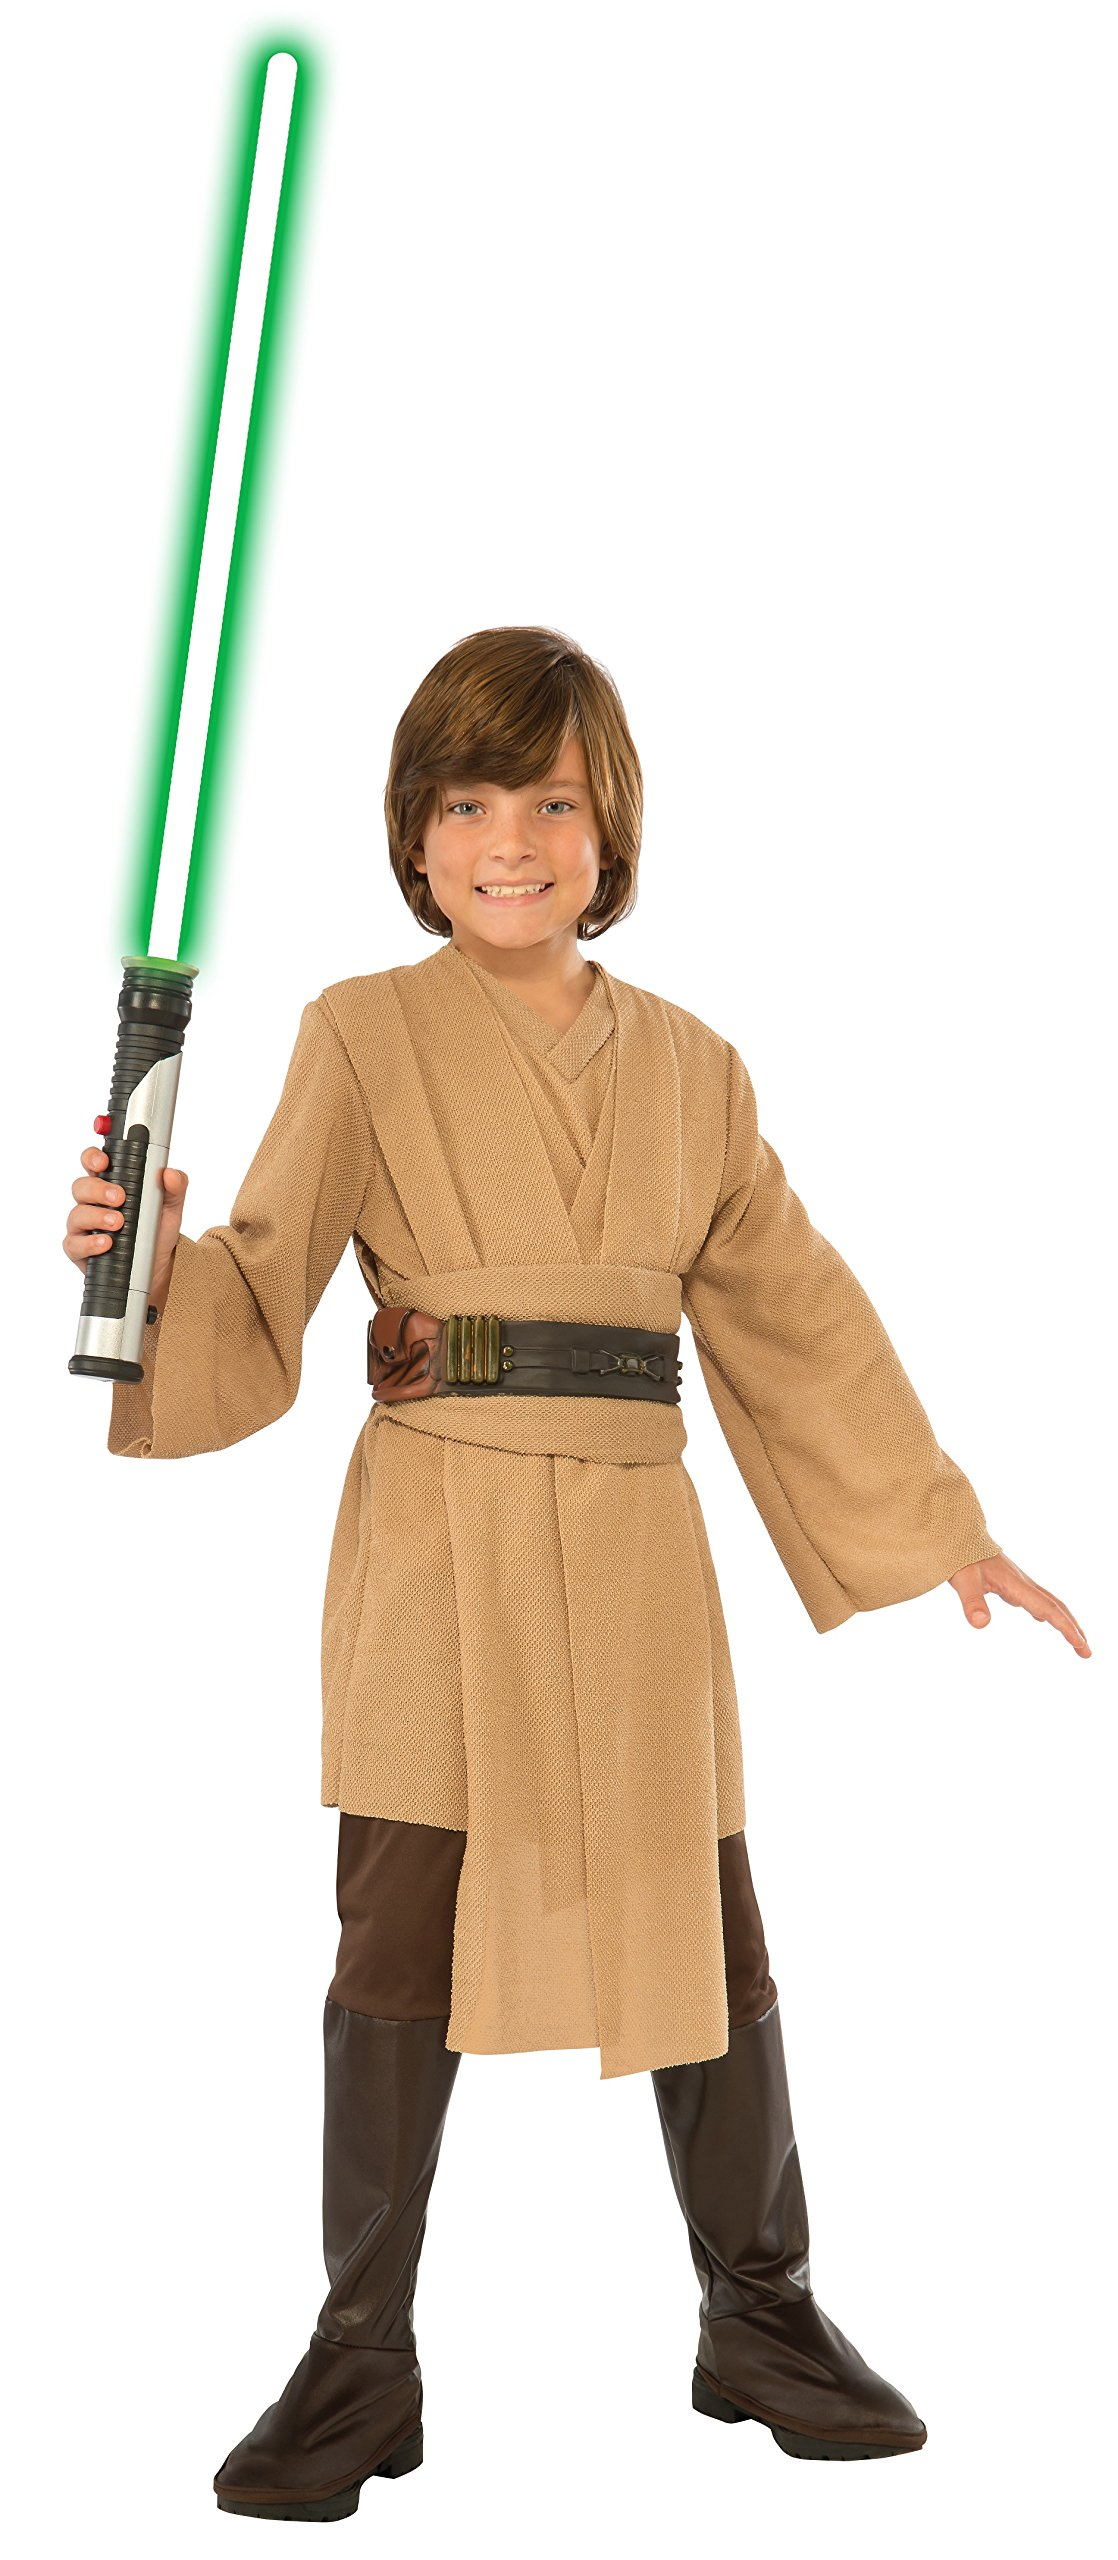 Star Wars Jedi Deluxe Child Costume, Large by Rubie's (Image #1)